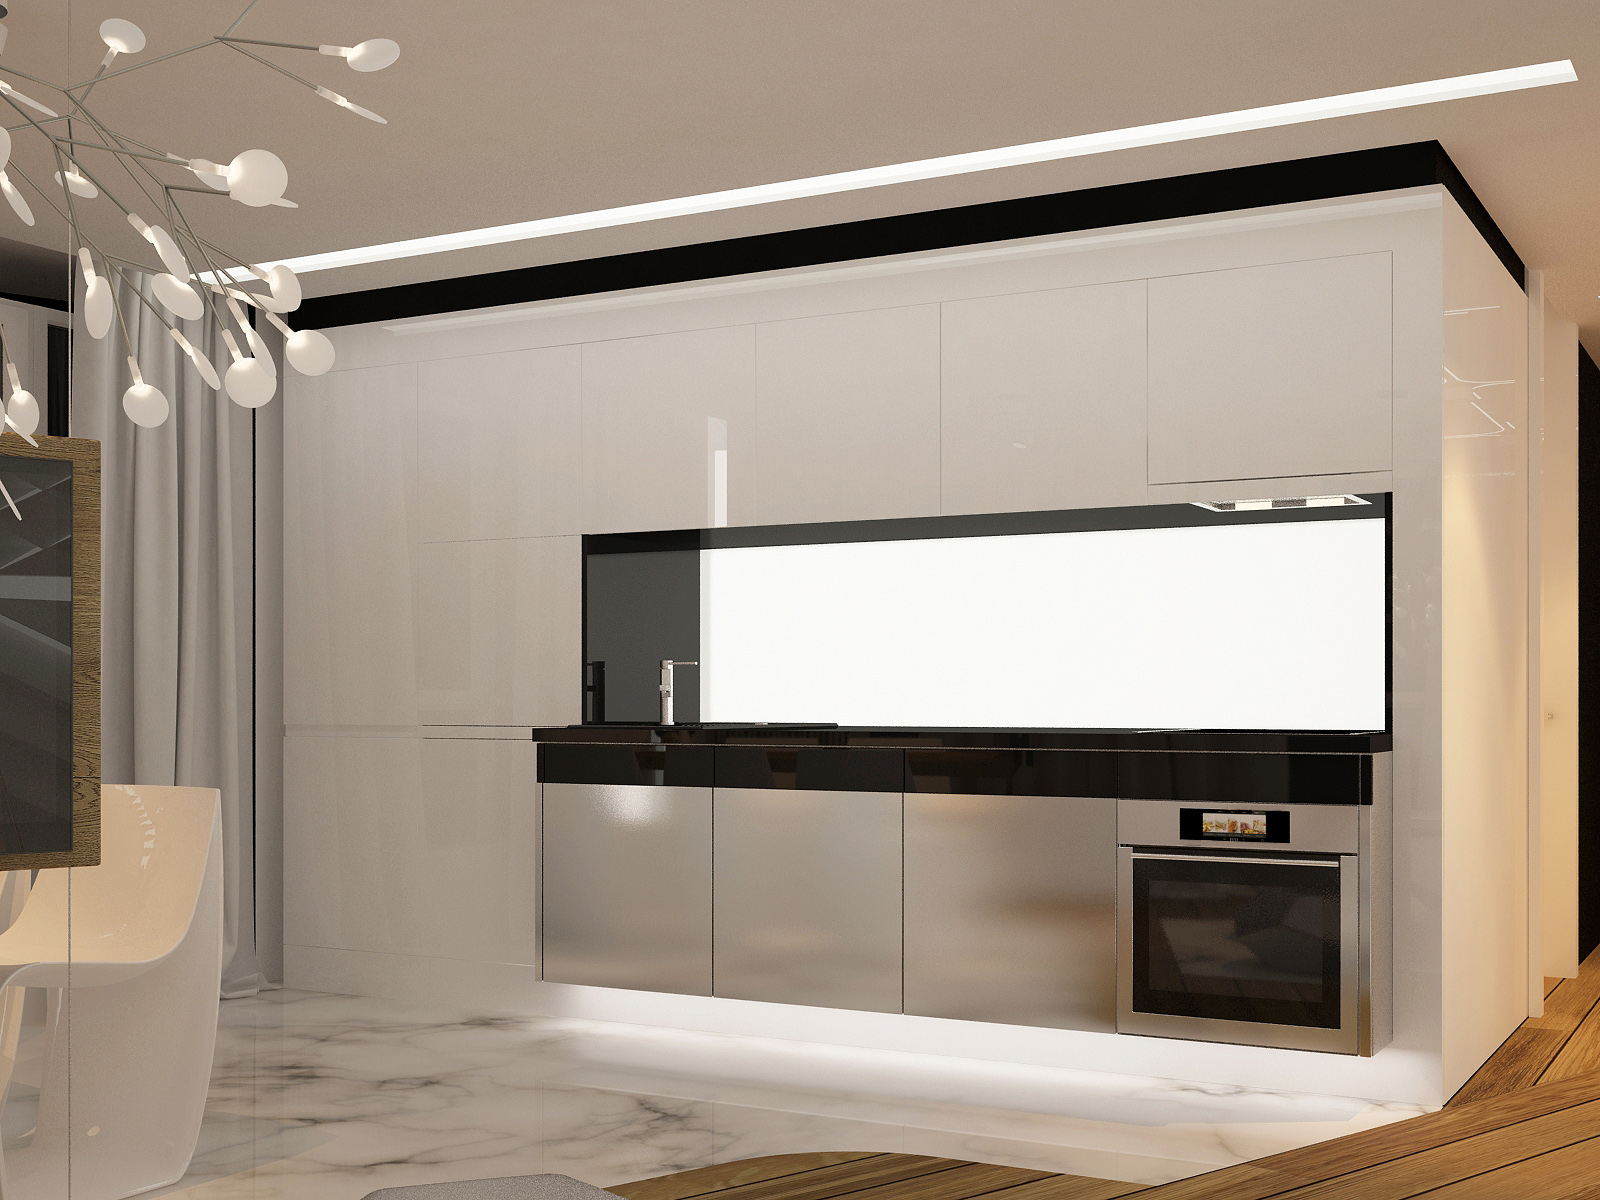 Style Kitchen Simple Futuristic Futuristic Interior Design